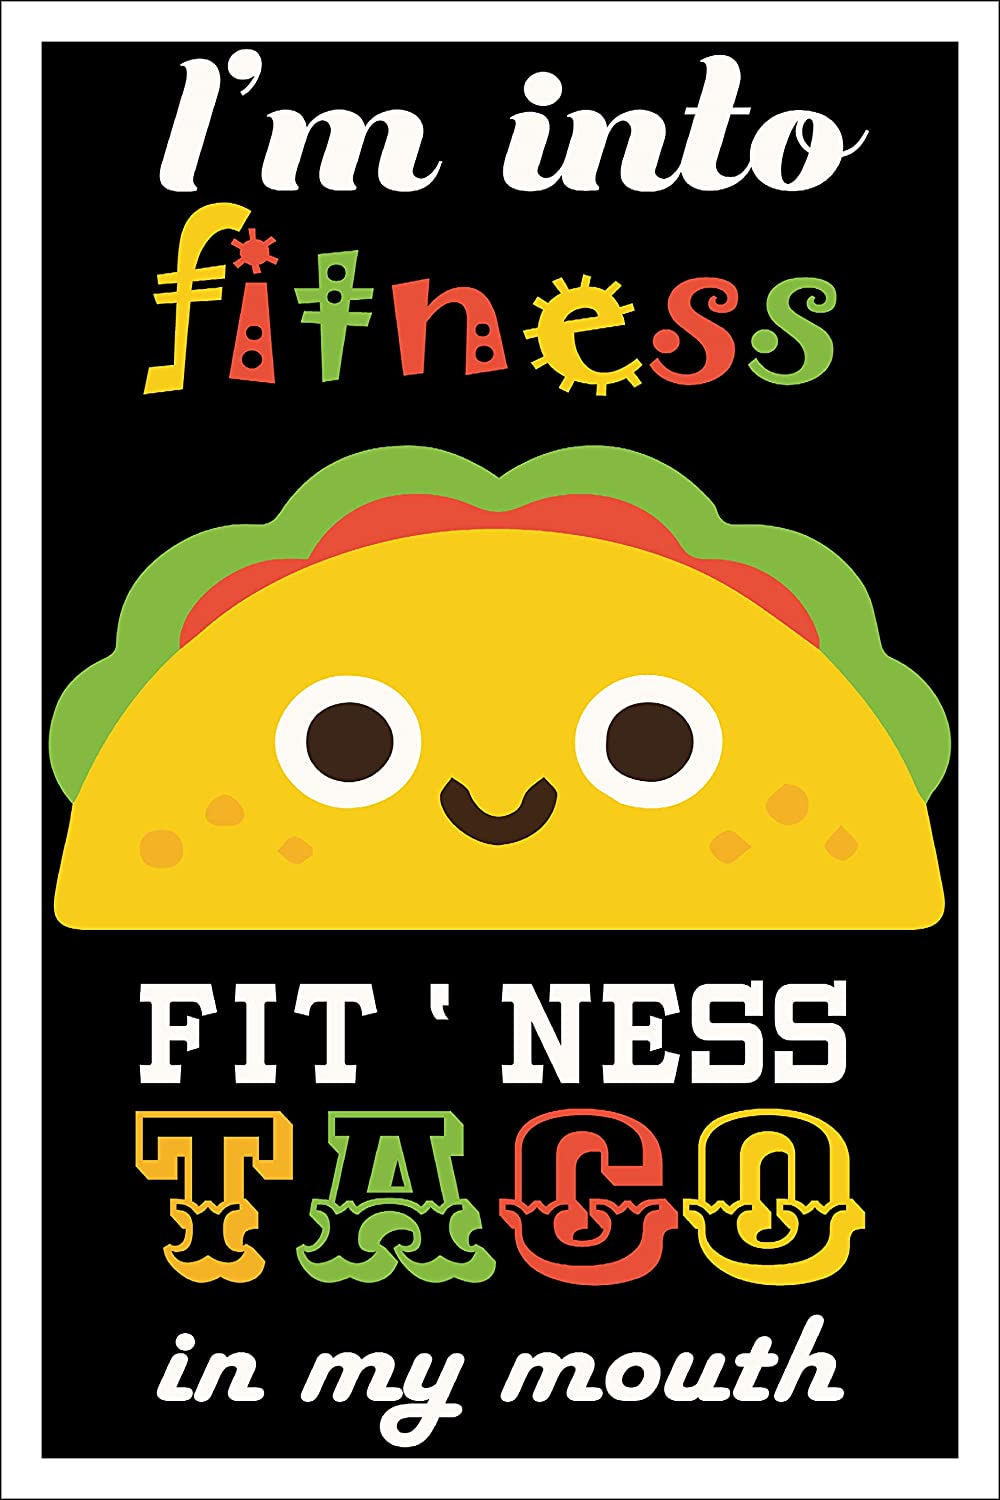 Corgi Weightlifting Combo PNG Check Out My Six Pack 6-Pack Tacos I Fitness Taco In My Mouth Gym Quotes PNG Funny Check Out My Six Pack